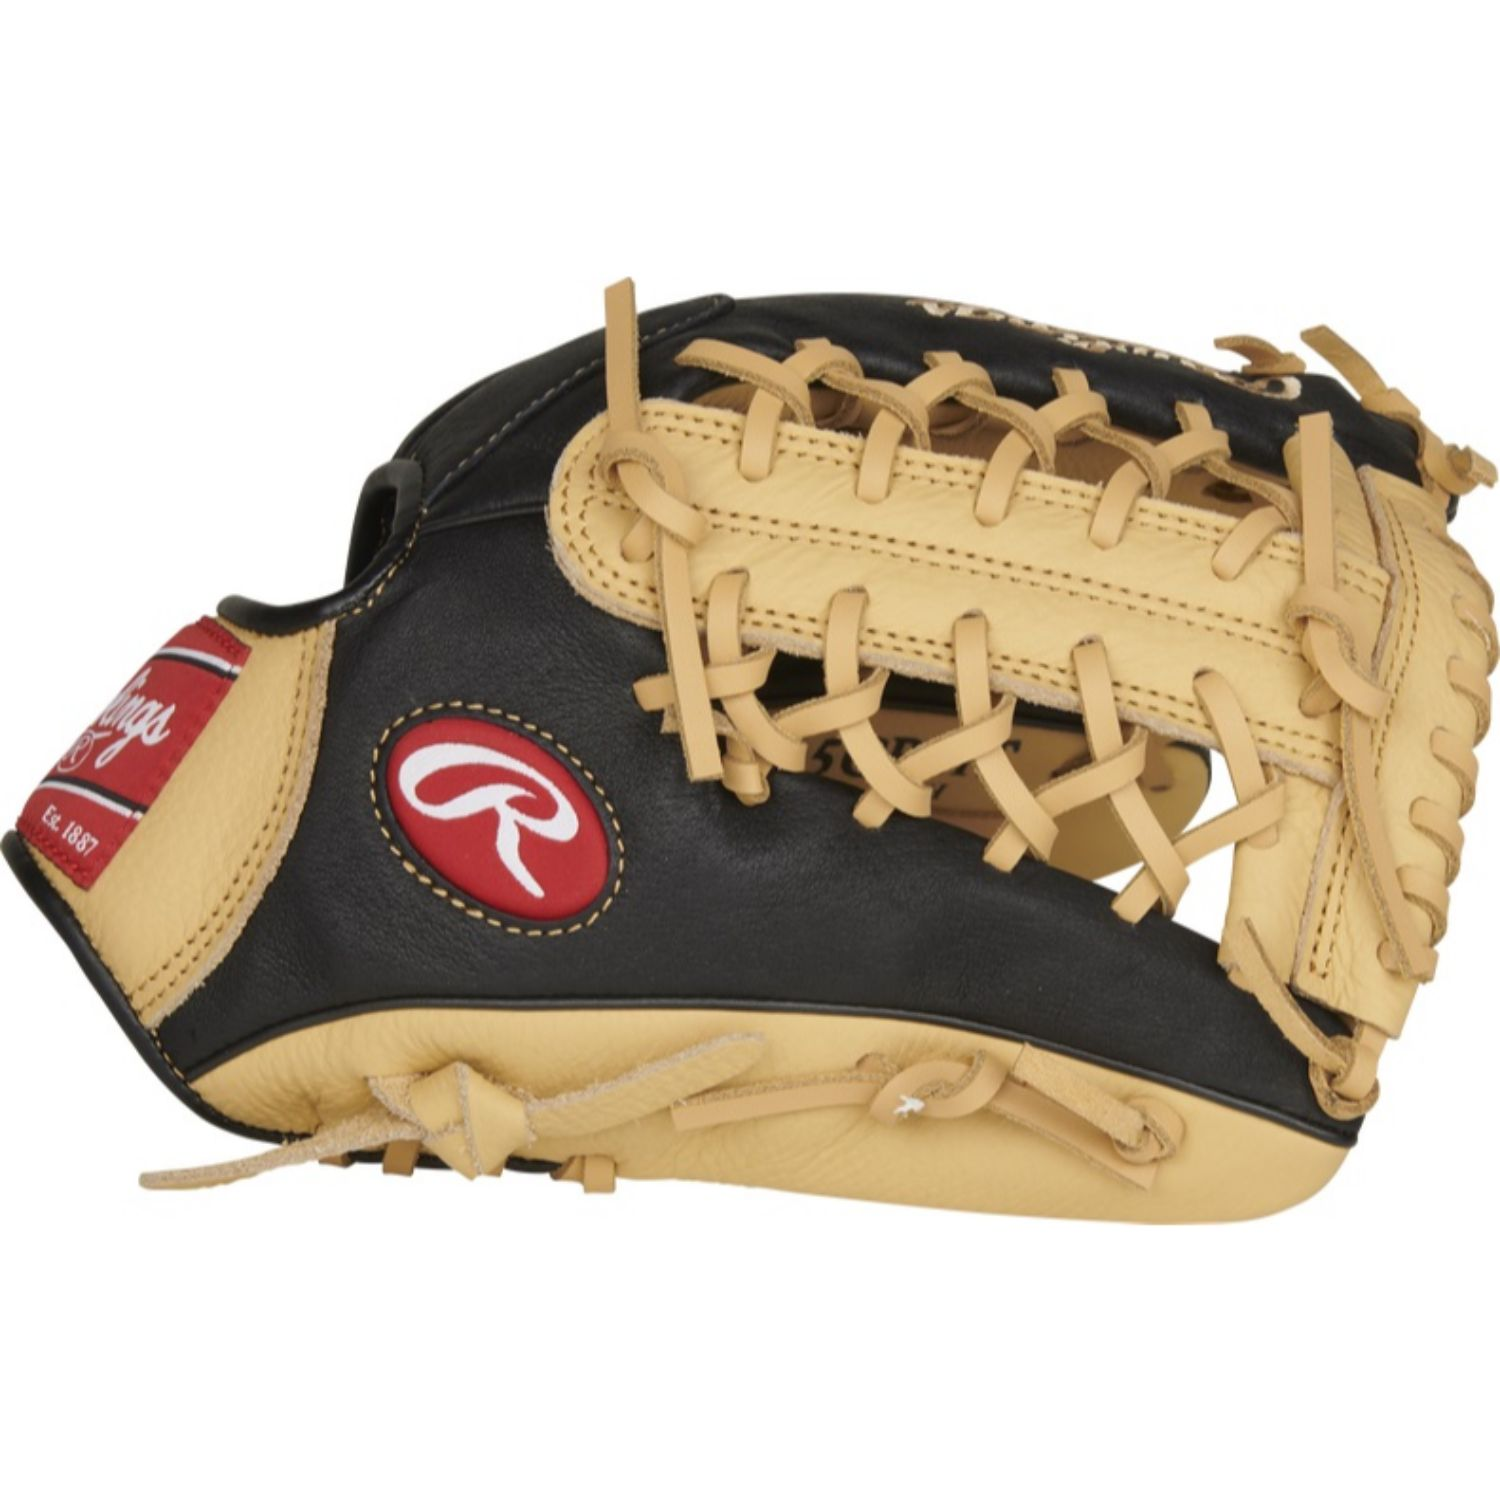 Rawlings 11.5 Inch Prodigy Youth Infield Glove LH